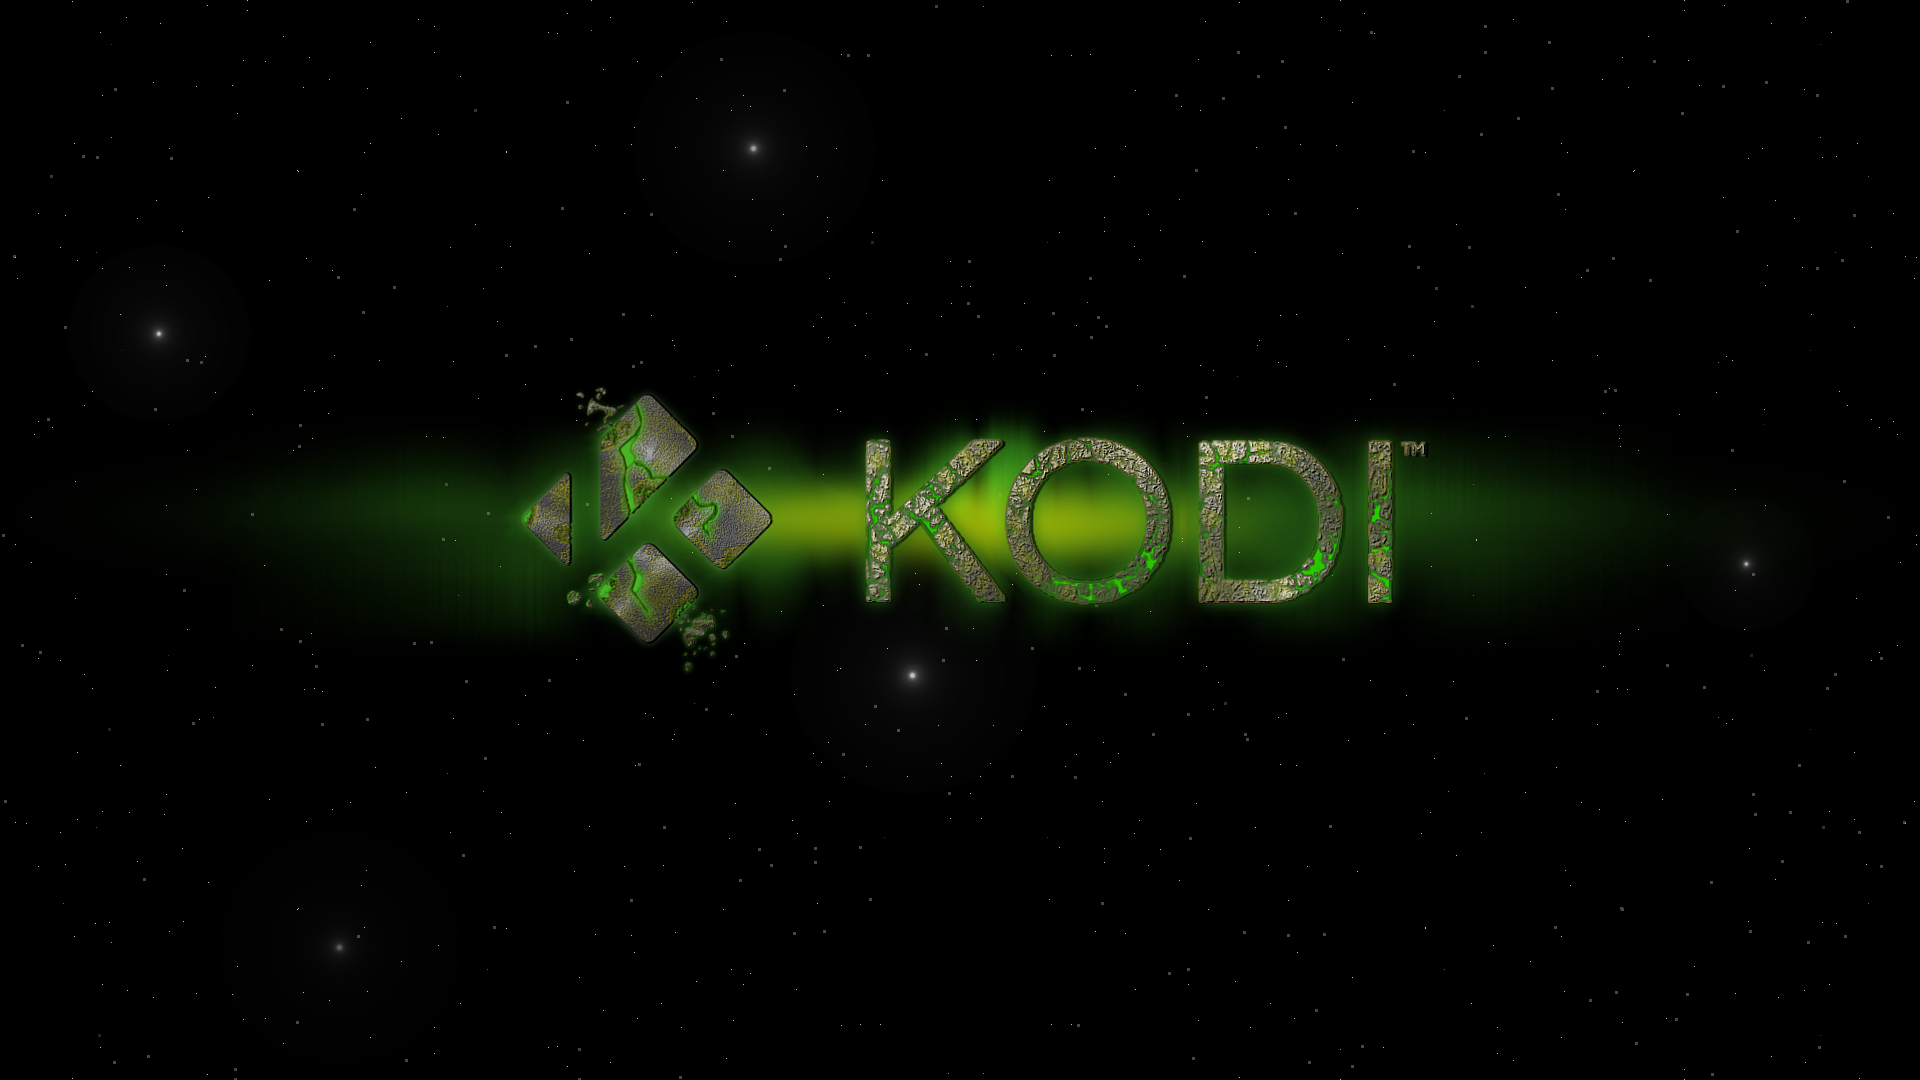 Kodi fanart and wallpaper -  Image 24160082175_ac8437e462_o Jpg